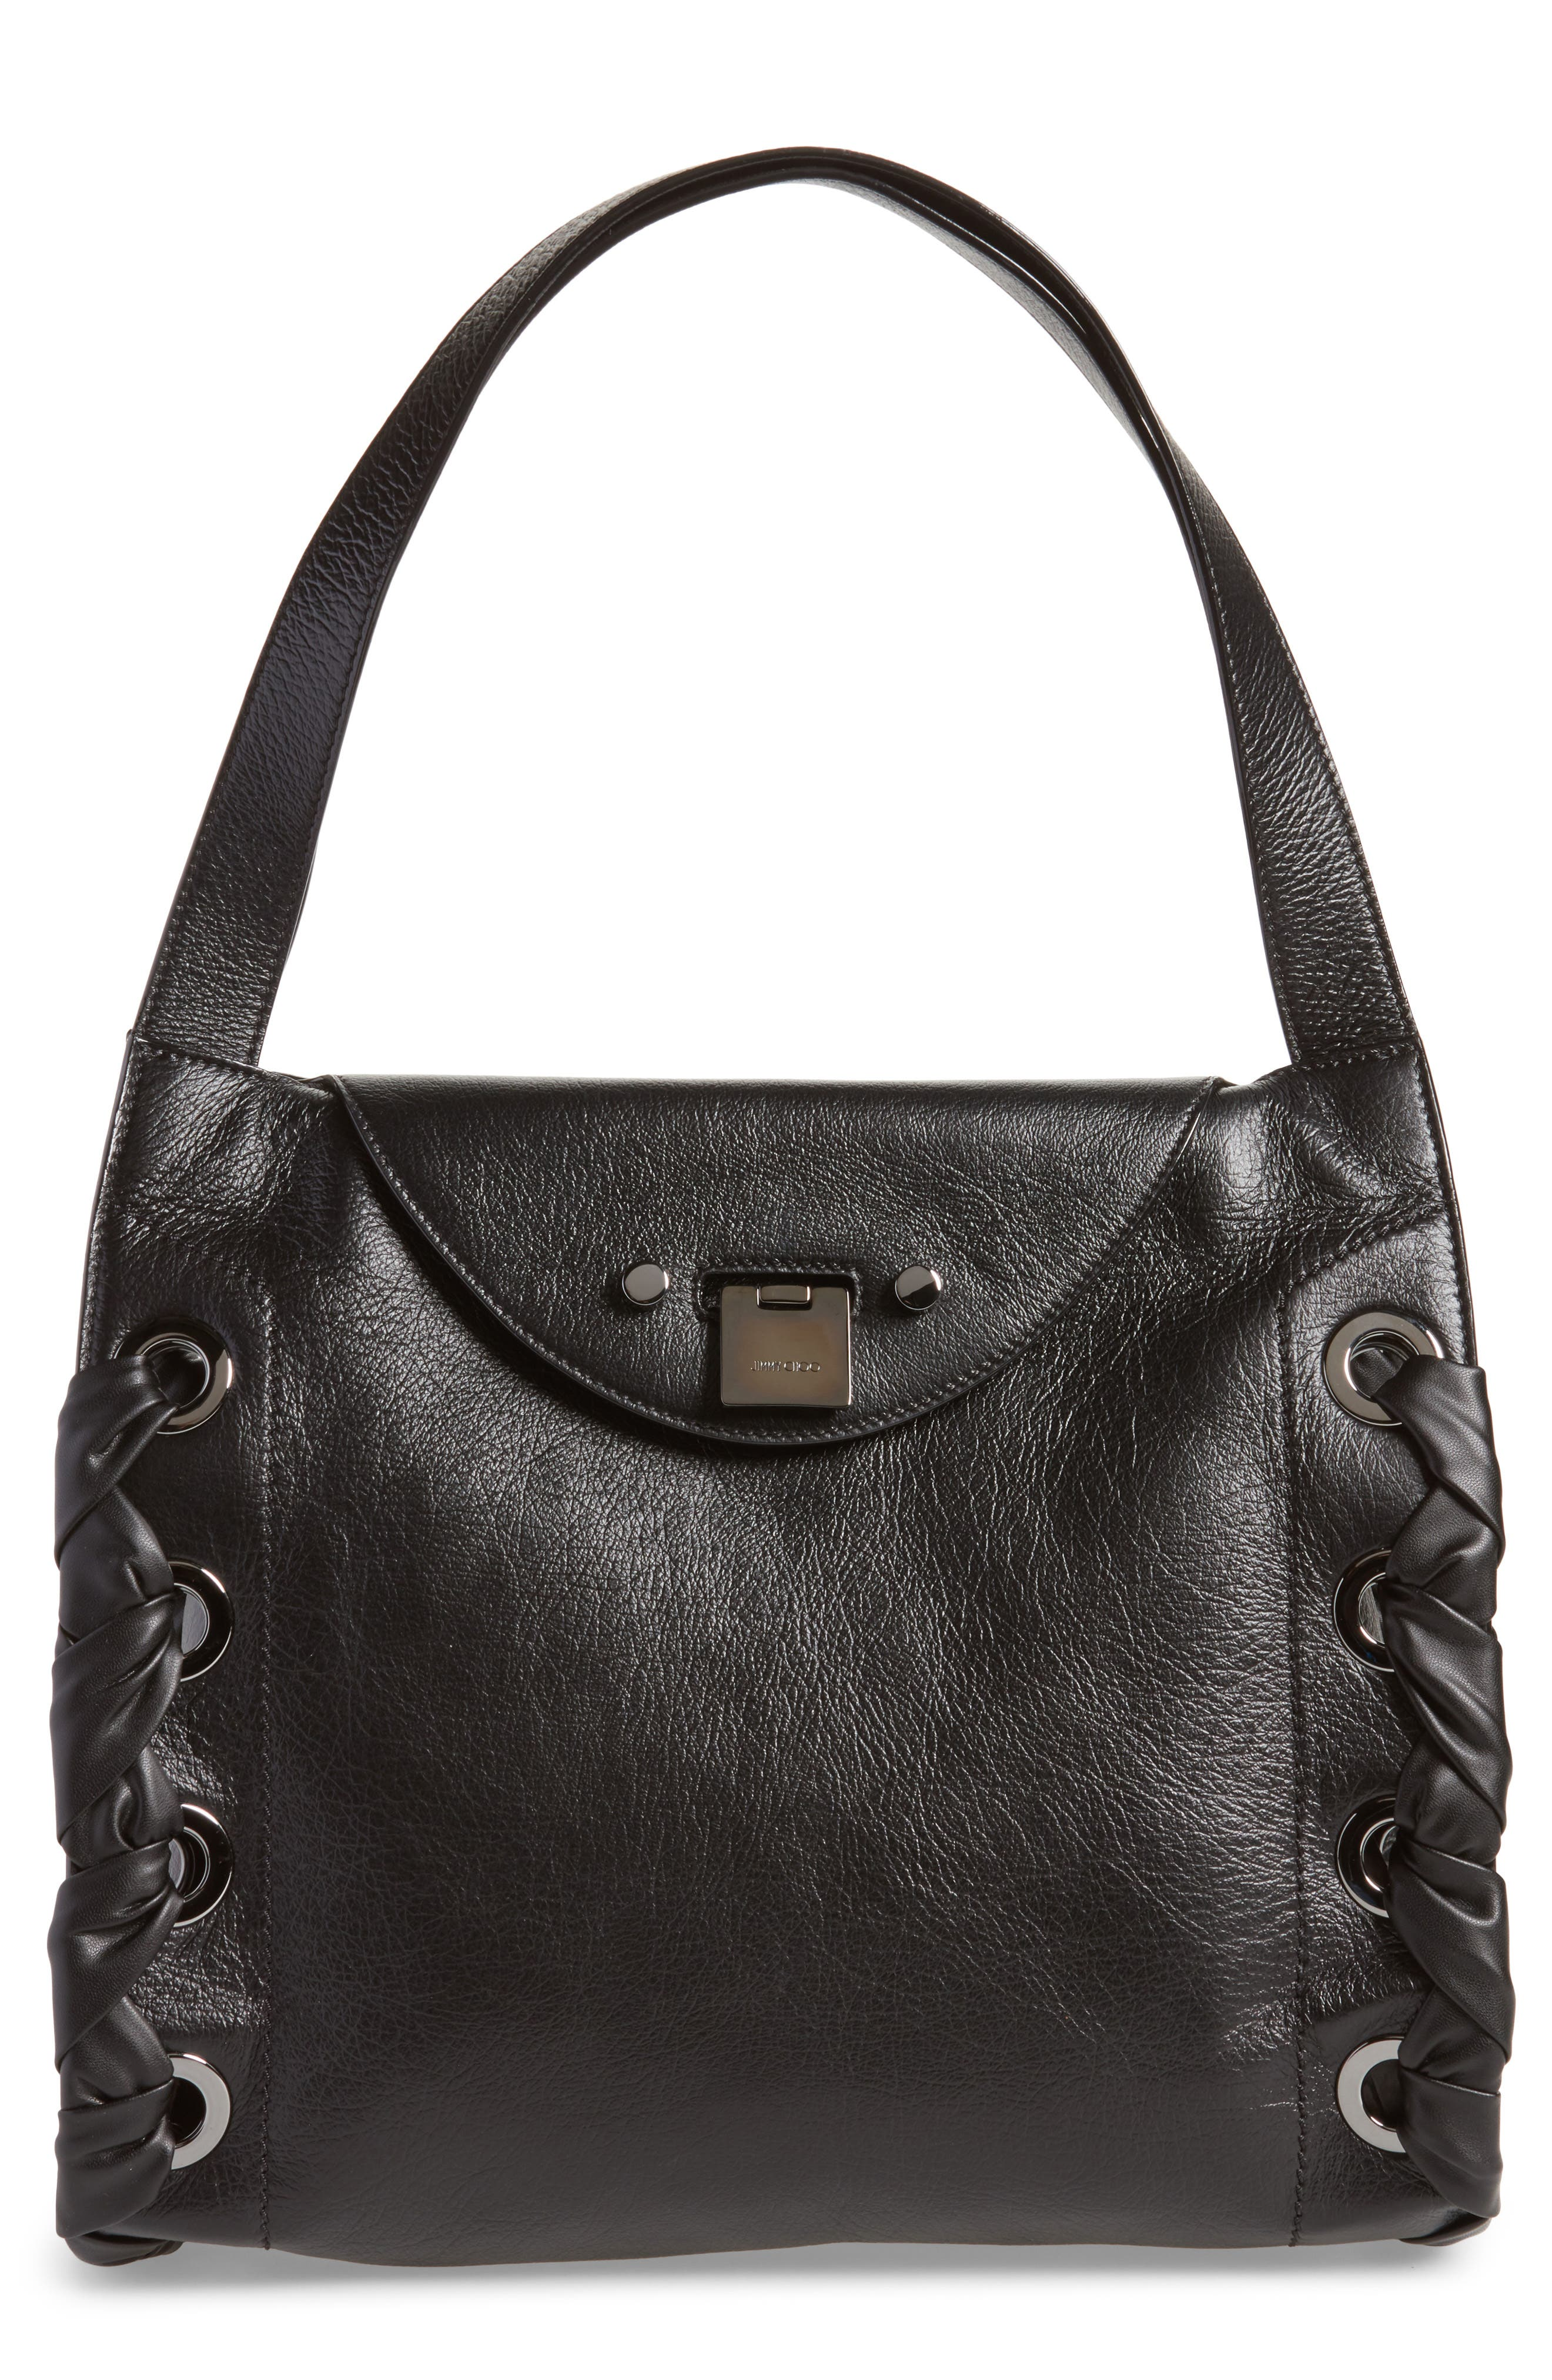 Rebel Leather Shoulder Bag,                             Main thumbnail 1, color,                             Black